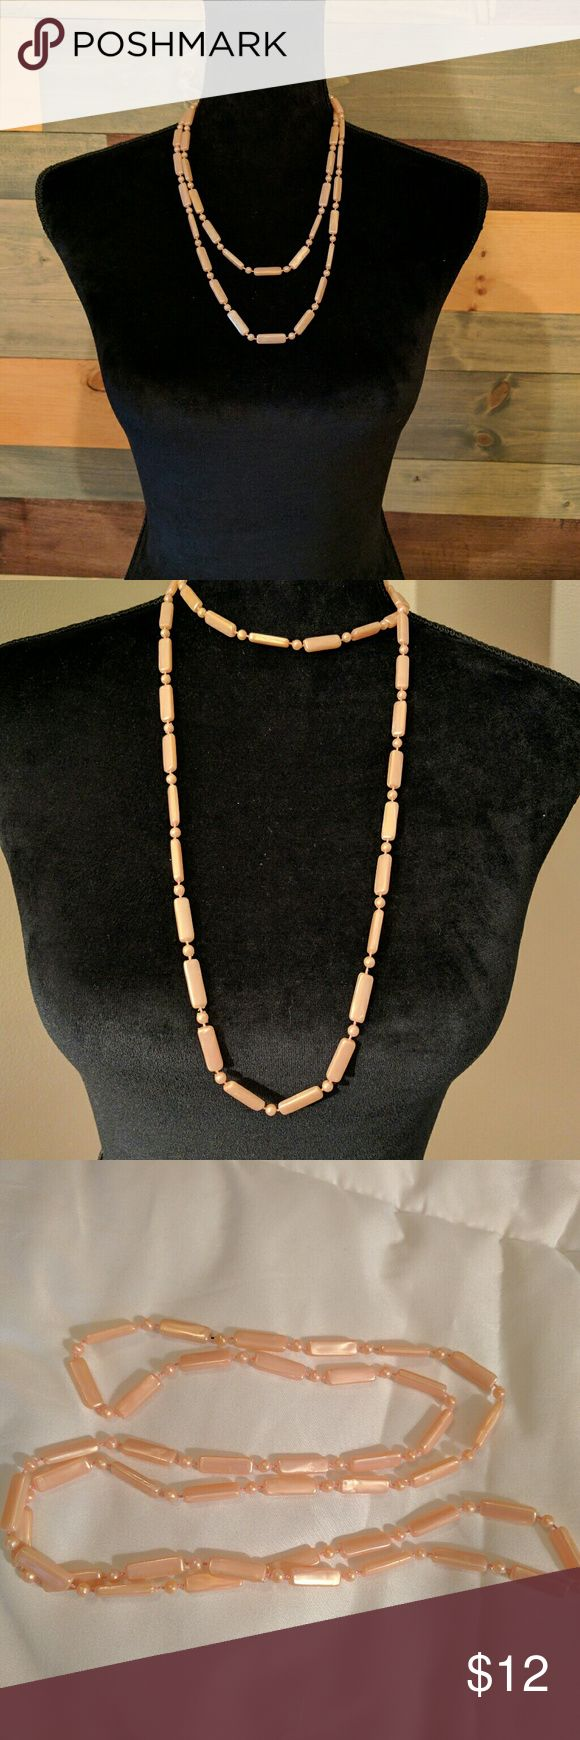 Perfectly peach vintage bead necklace Still looks shiny and new Jewelry